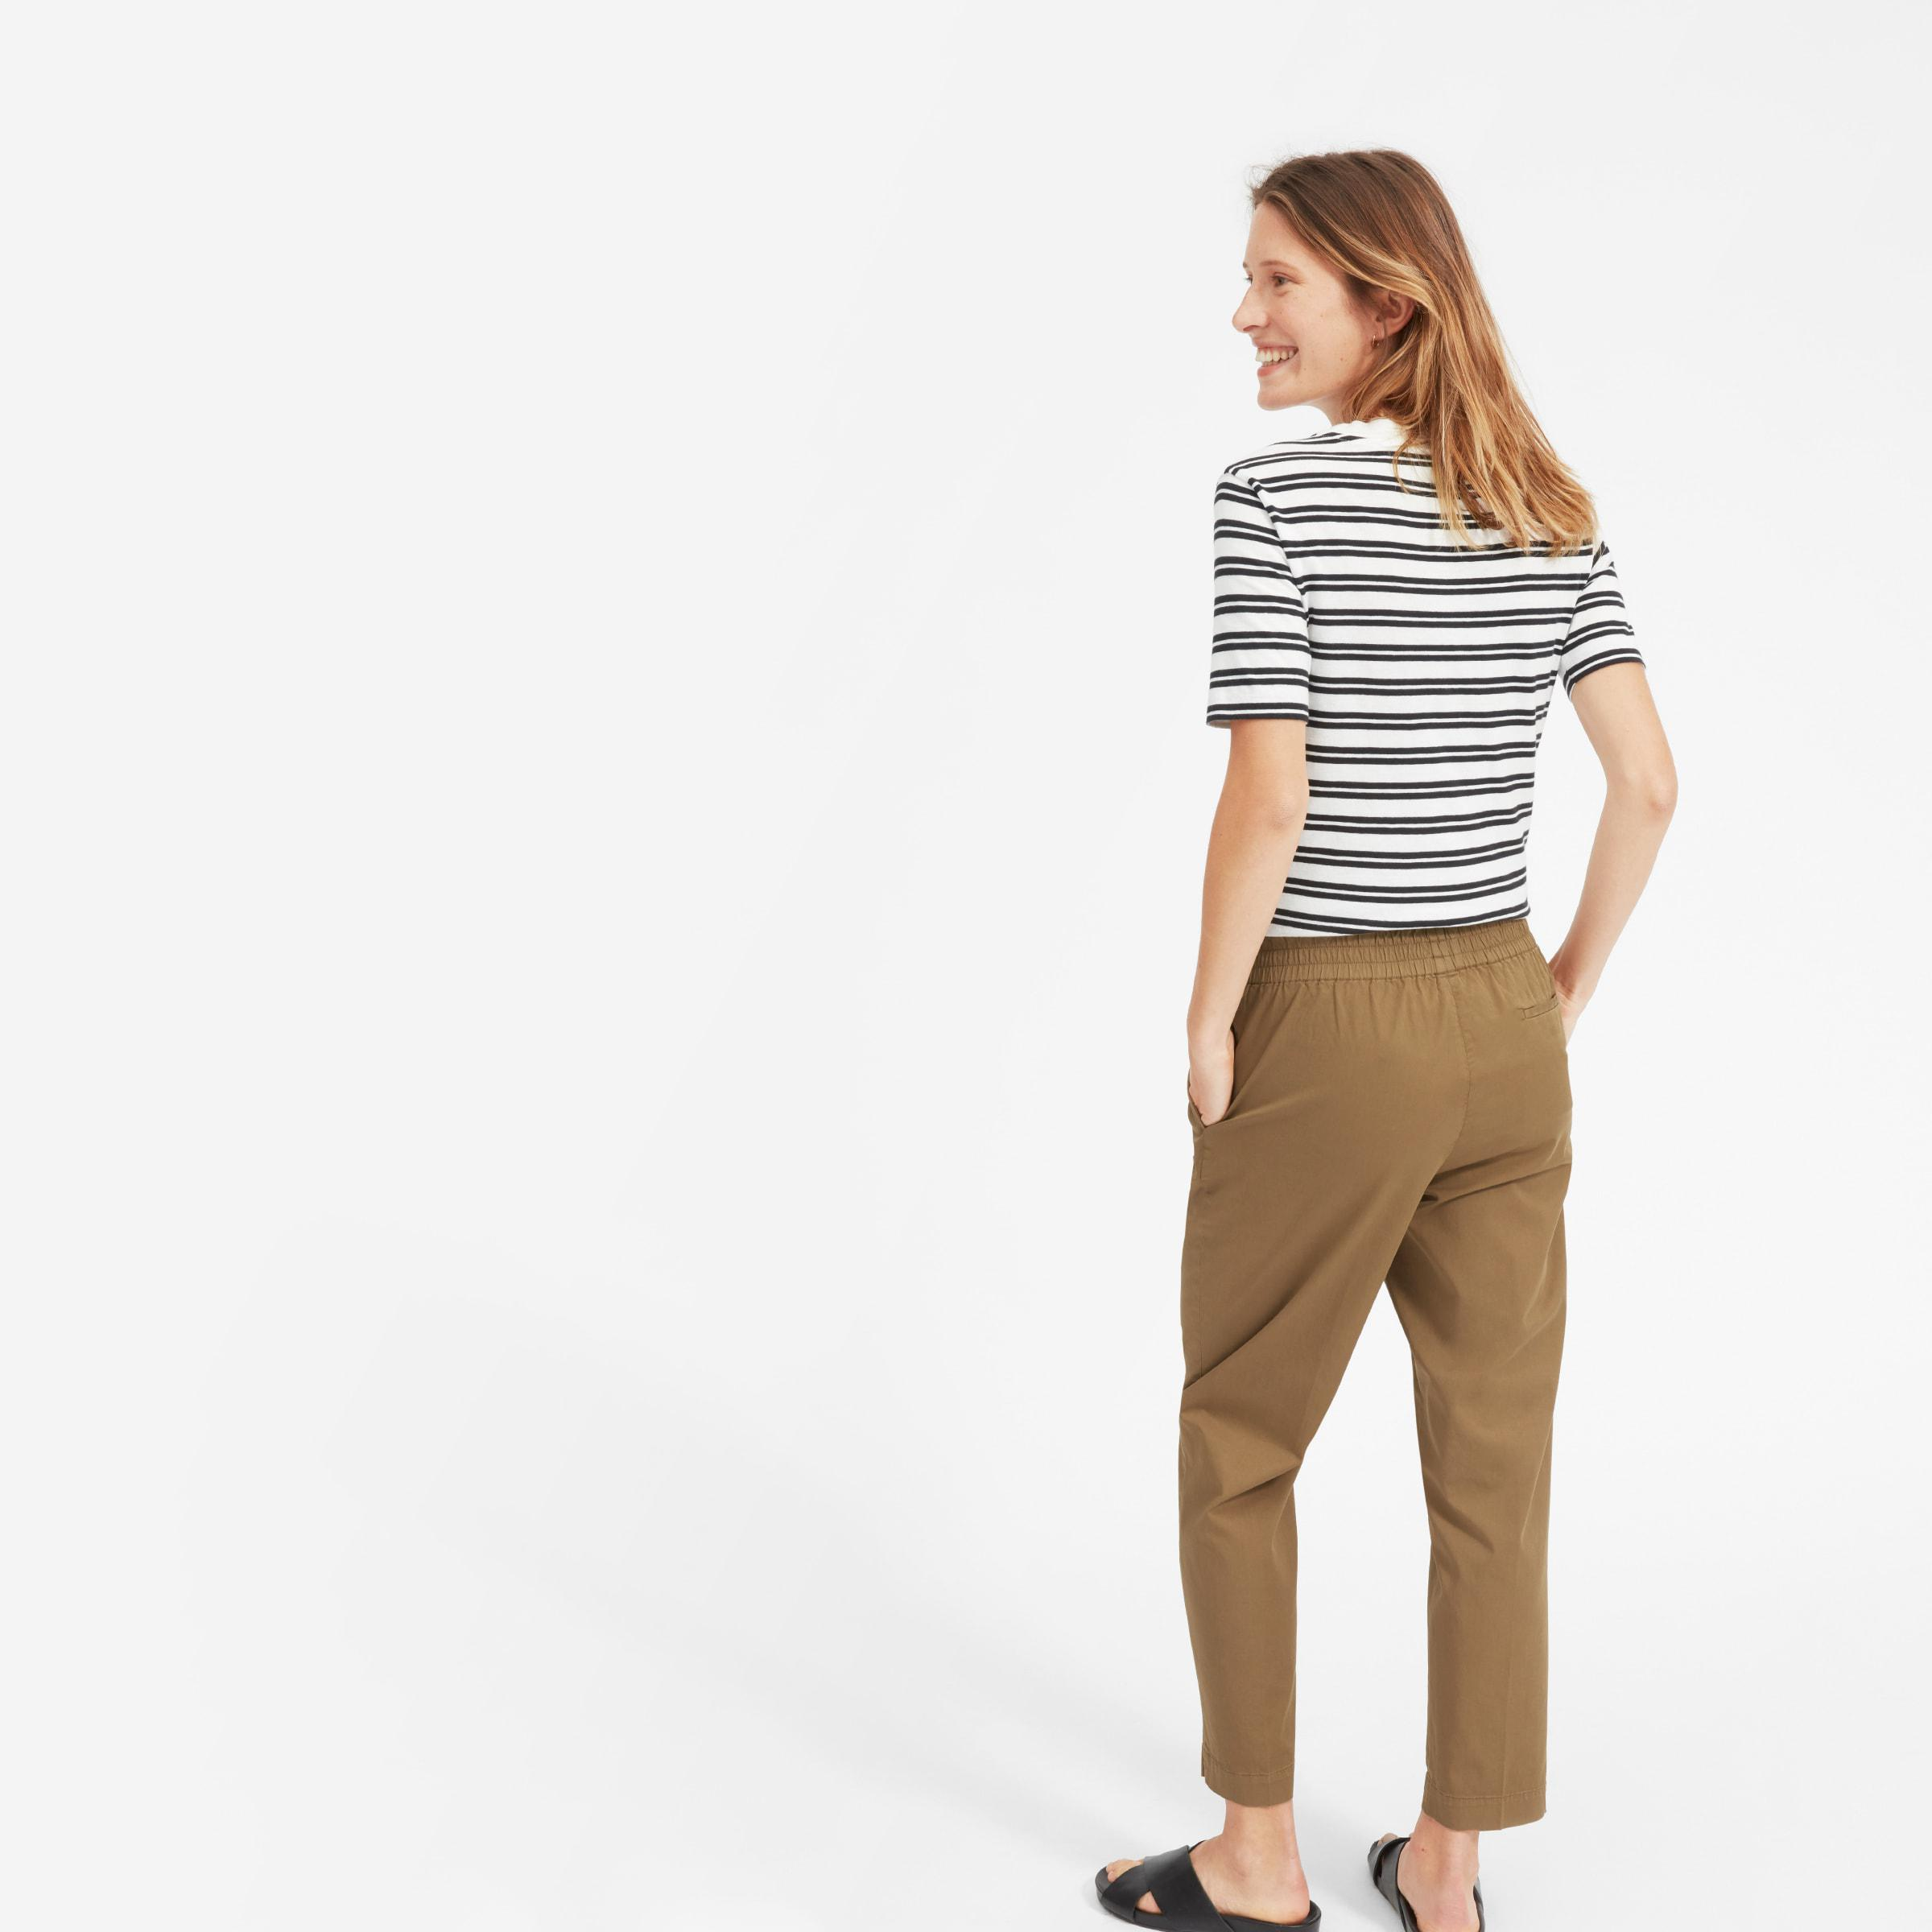 The Easy Chino 3